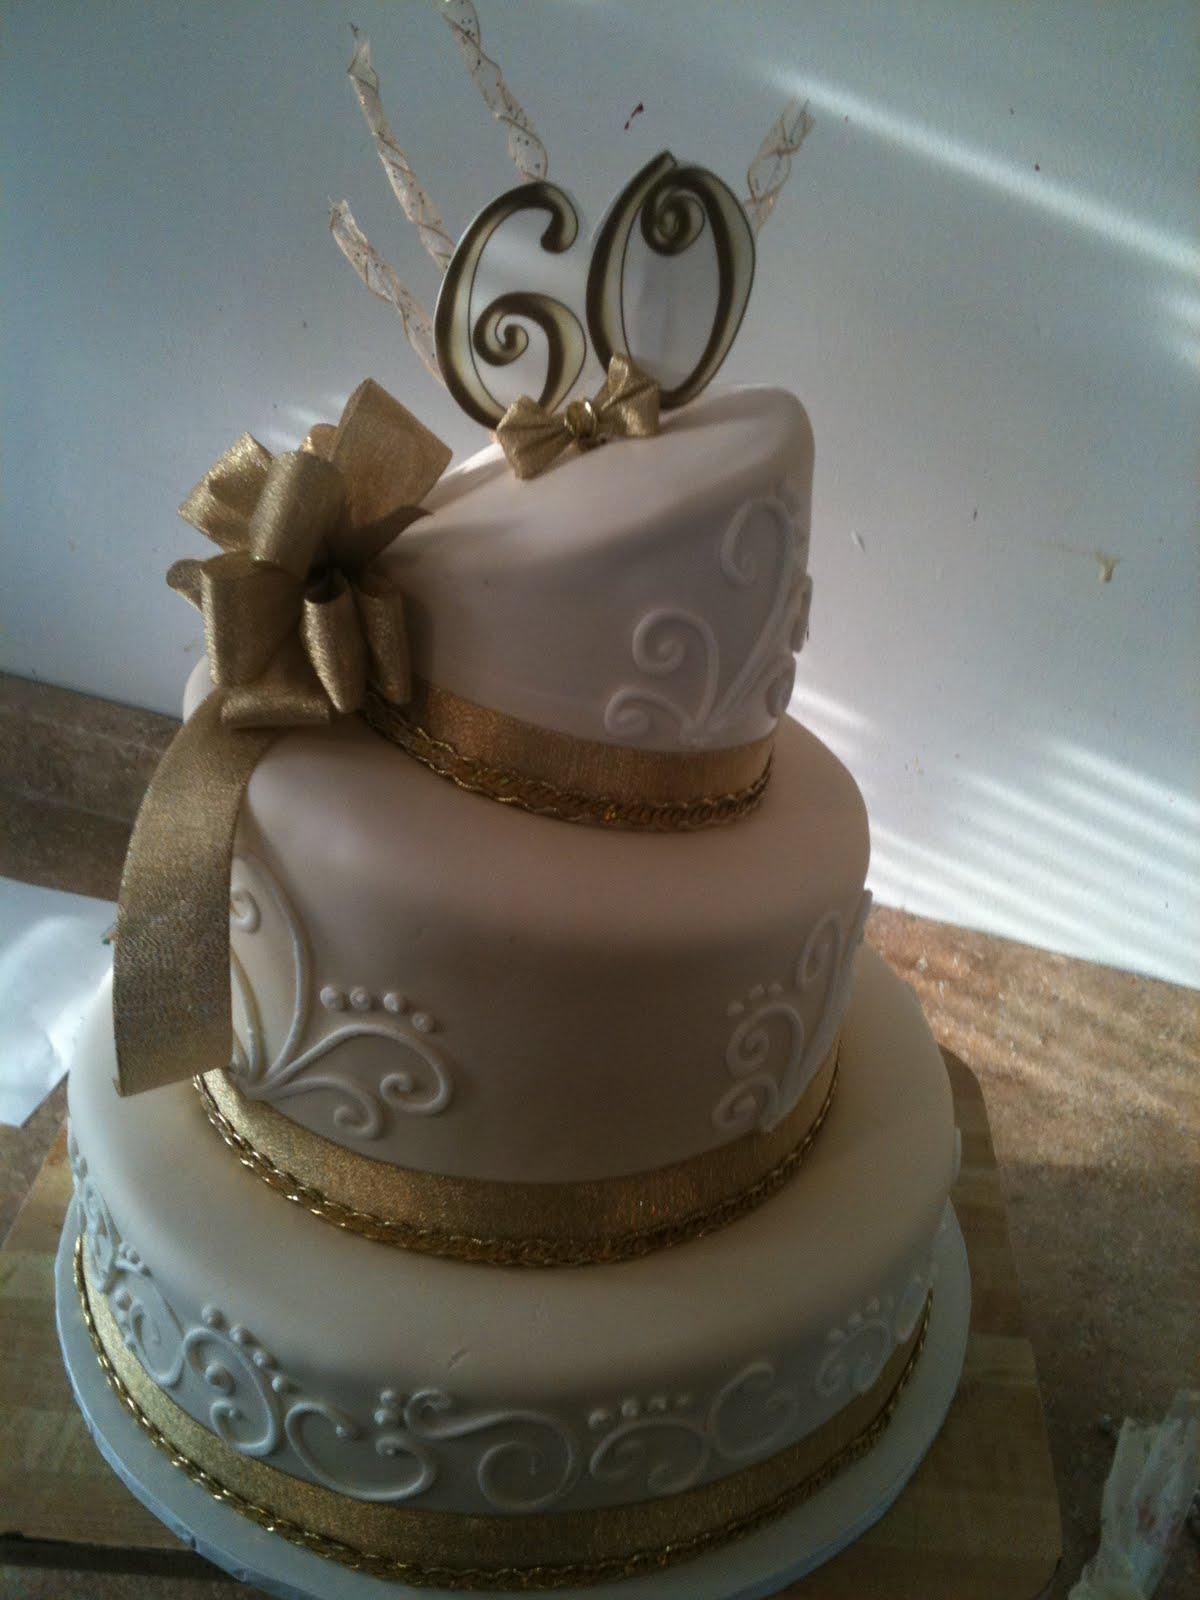 60th Birthday Gold Edition Topsy Turvy